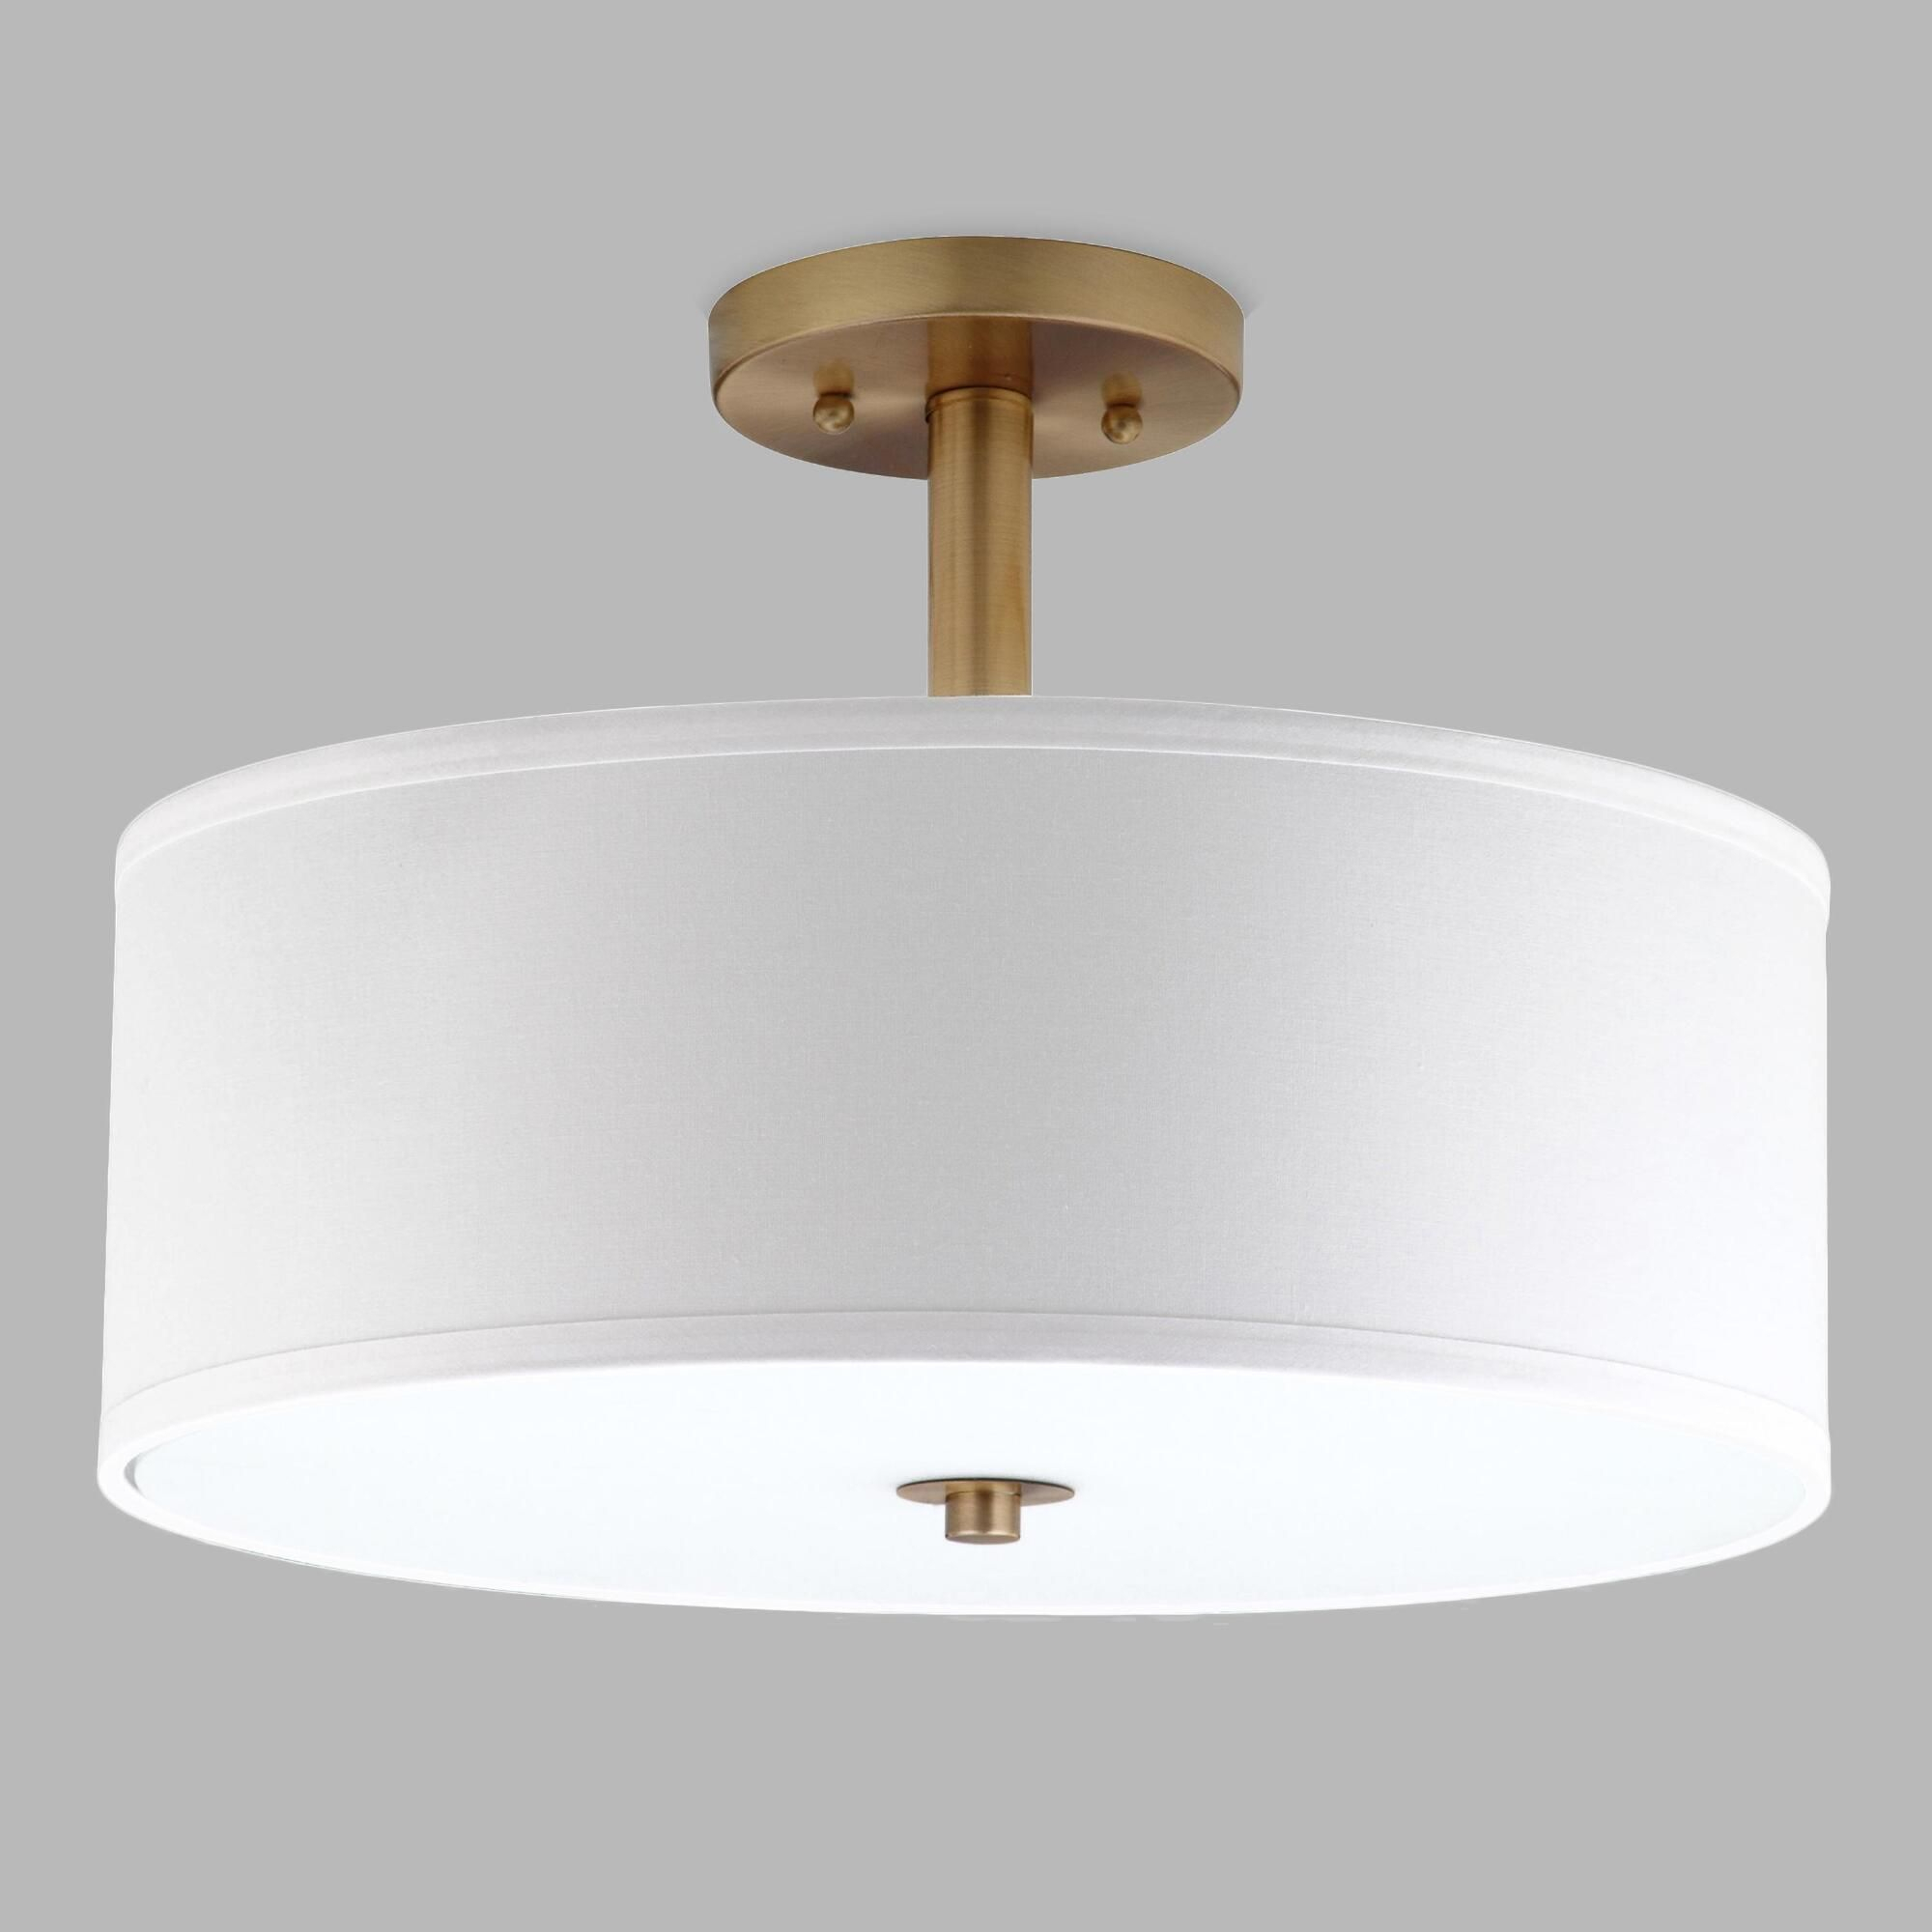 Gold And White Flush Mount Alysian Ceiling Light: Metallic within Hermione 1-Light Single Drum Pendants (Image 13 of 30)